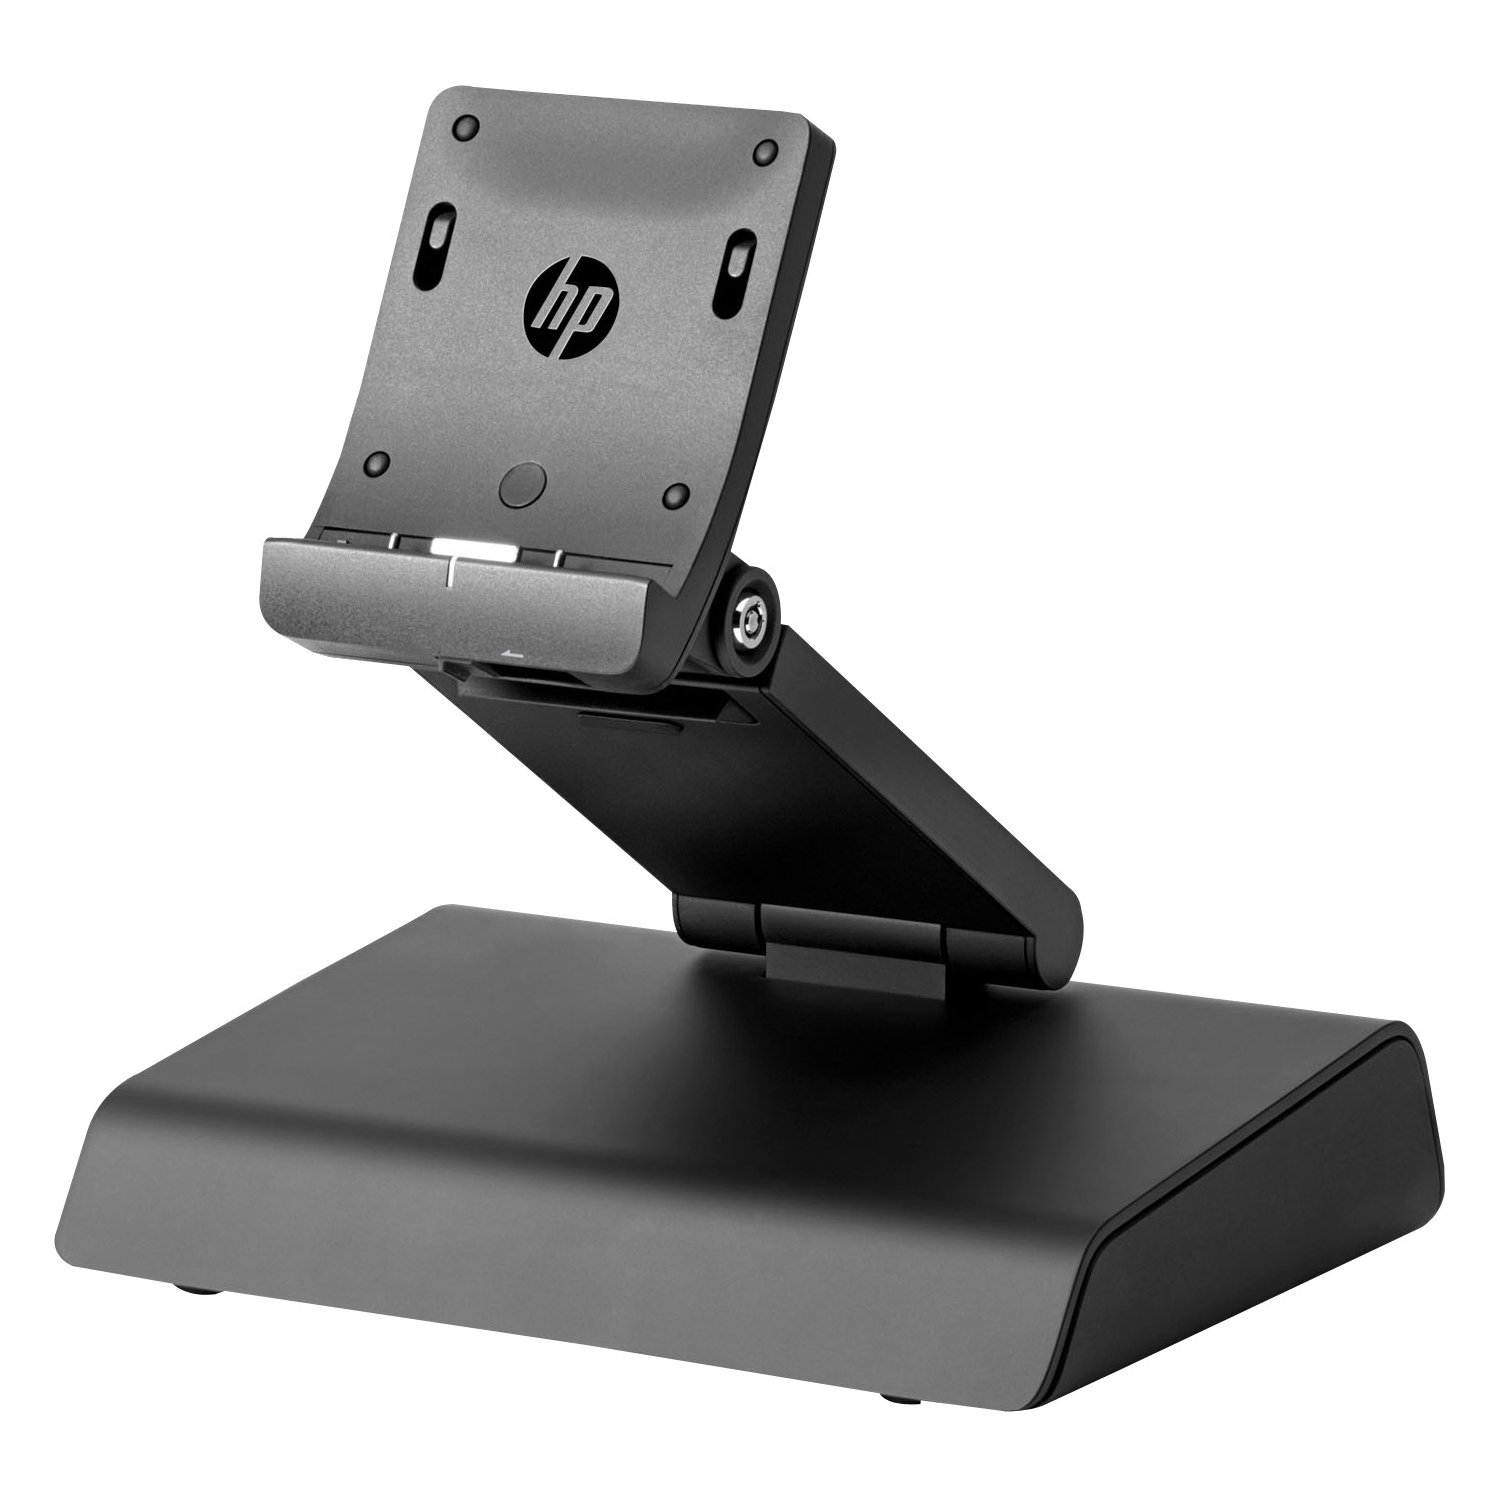 HP F3K89AT#ABA Retail Expansion Dock for Elite Pad Tablet